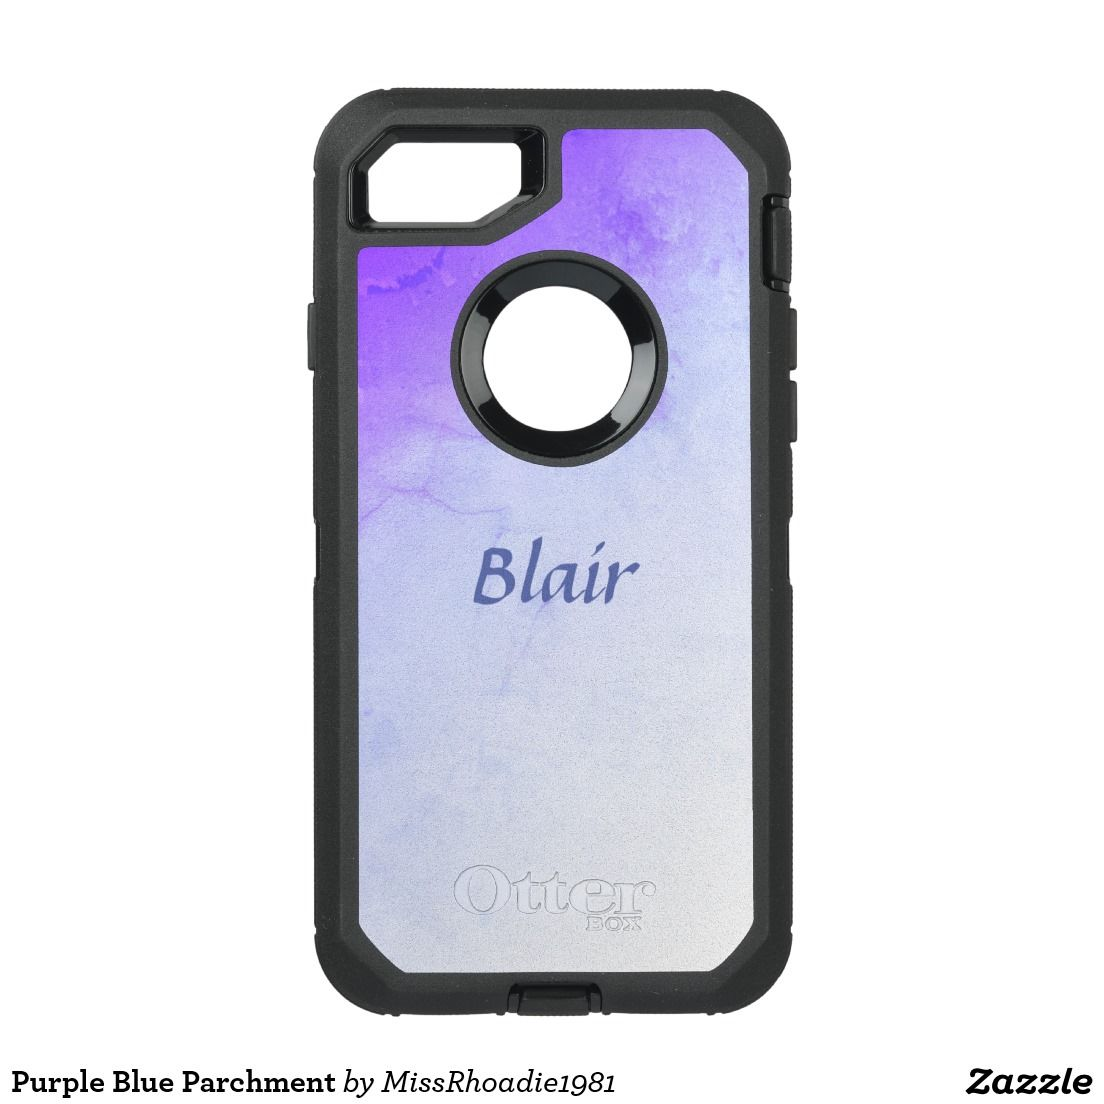 Purple Blue Parchment Otterbox iphone7  You will absolutely love this phone case. Created exactly as picture, this case features a purplish blue parchment design.  Personalize yours today. #otterbox #zazzle